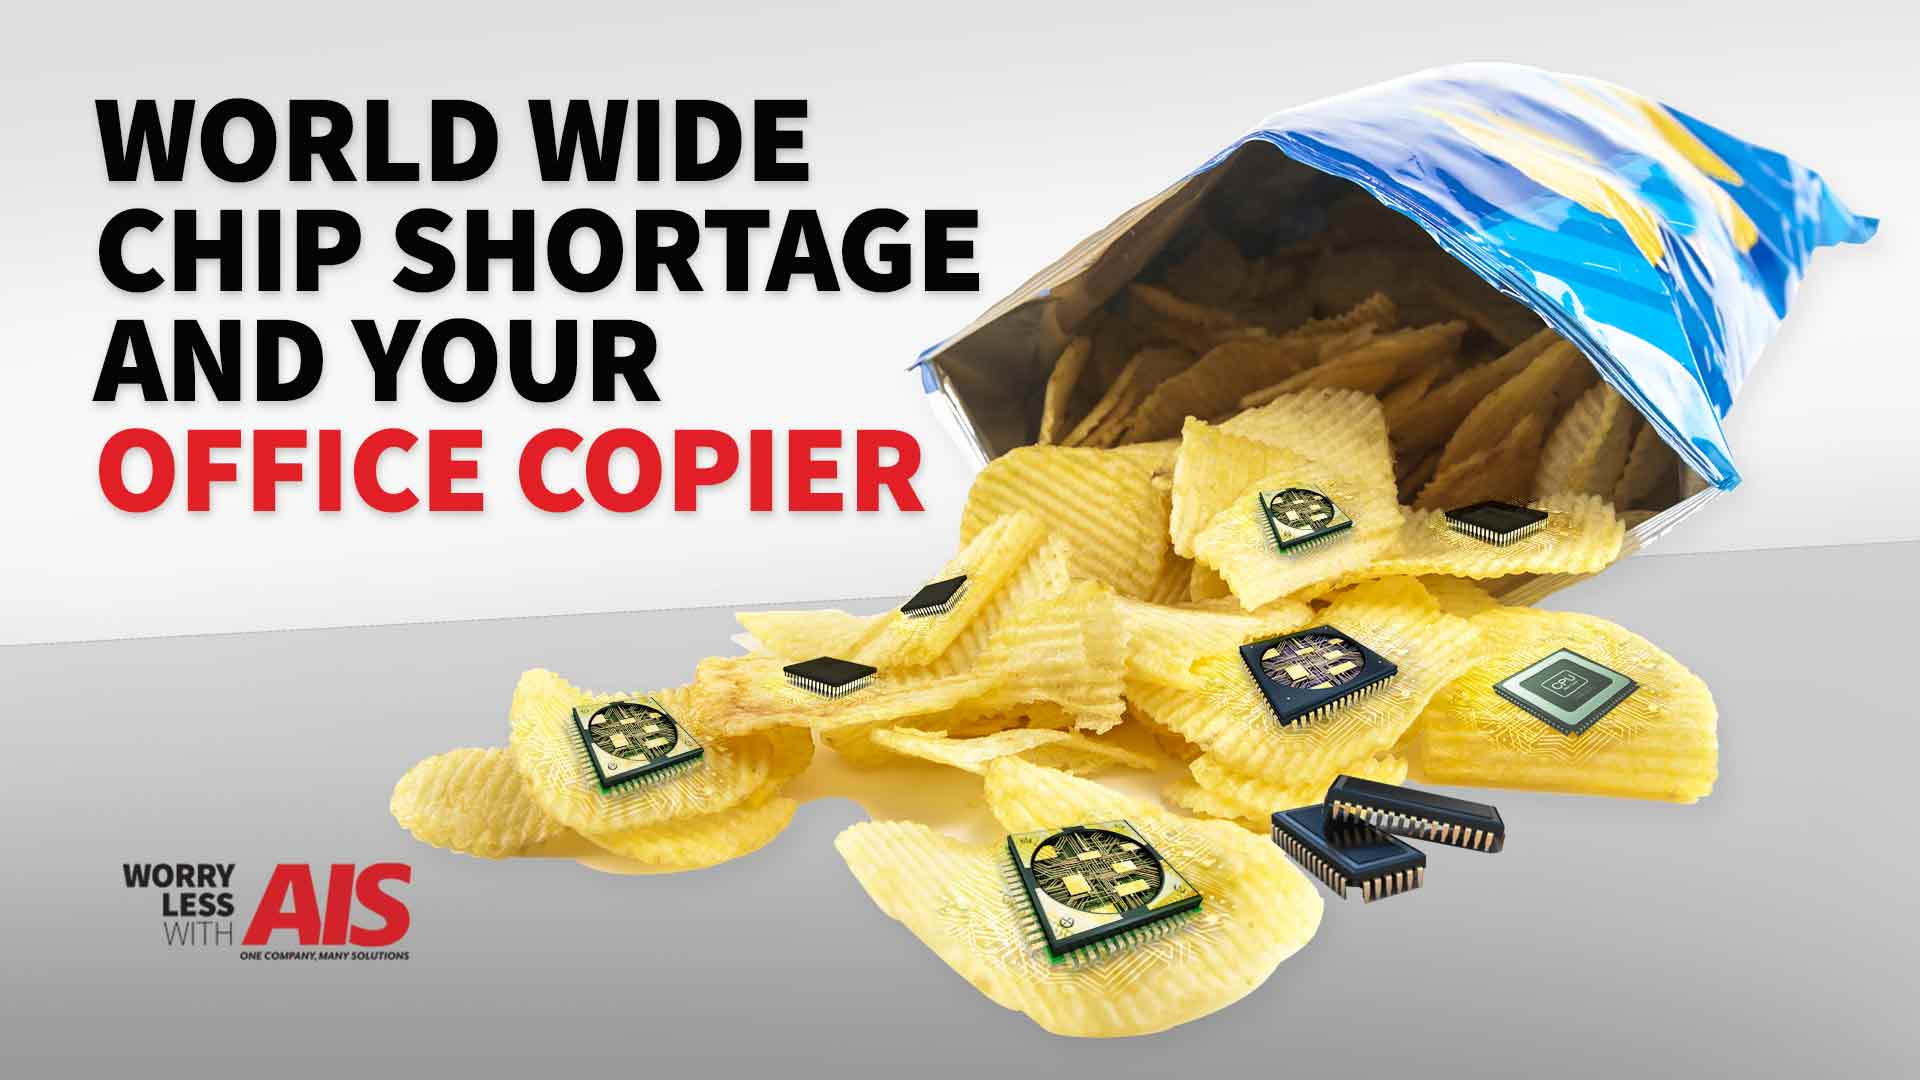 Worldwide Chip Shortage and Logistics: How Does It Affect Your Office Copier?